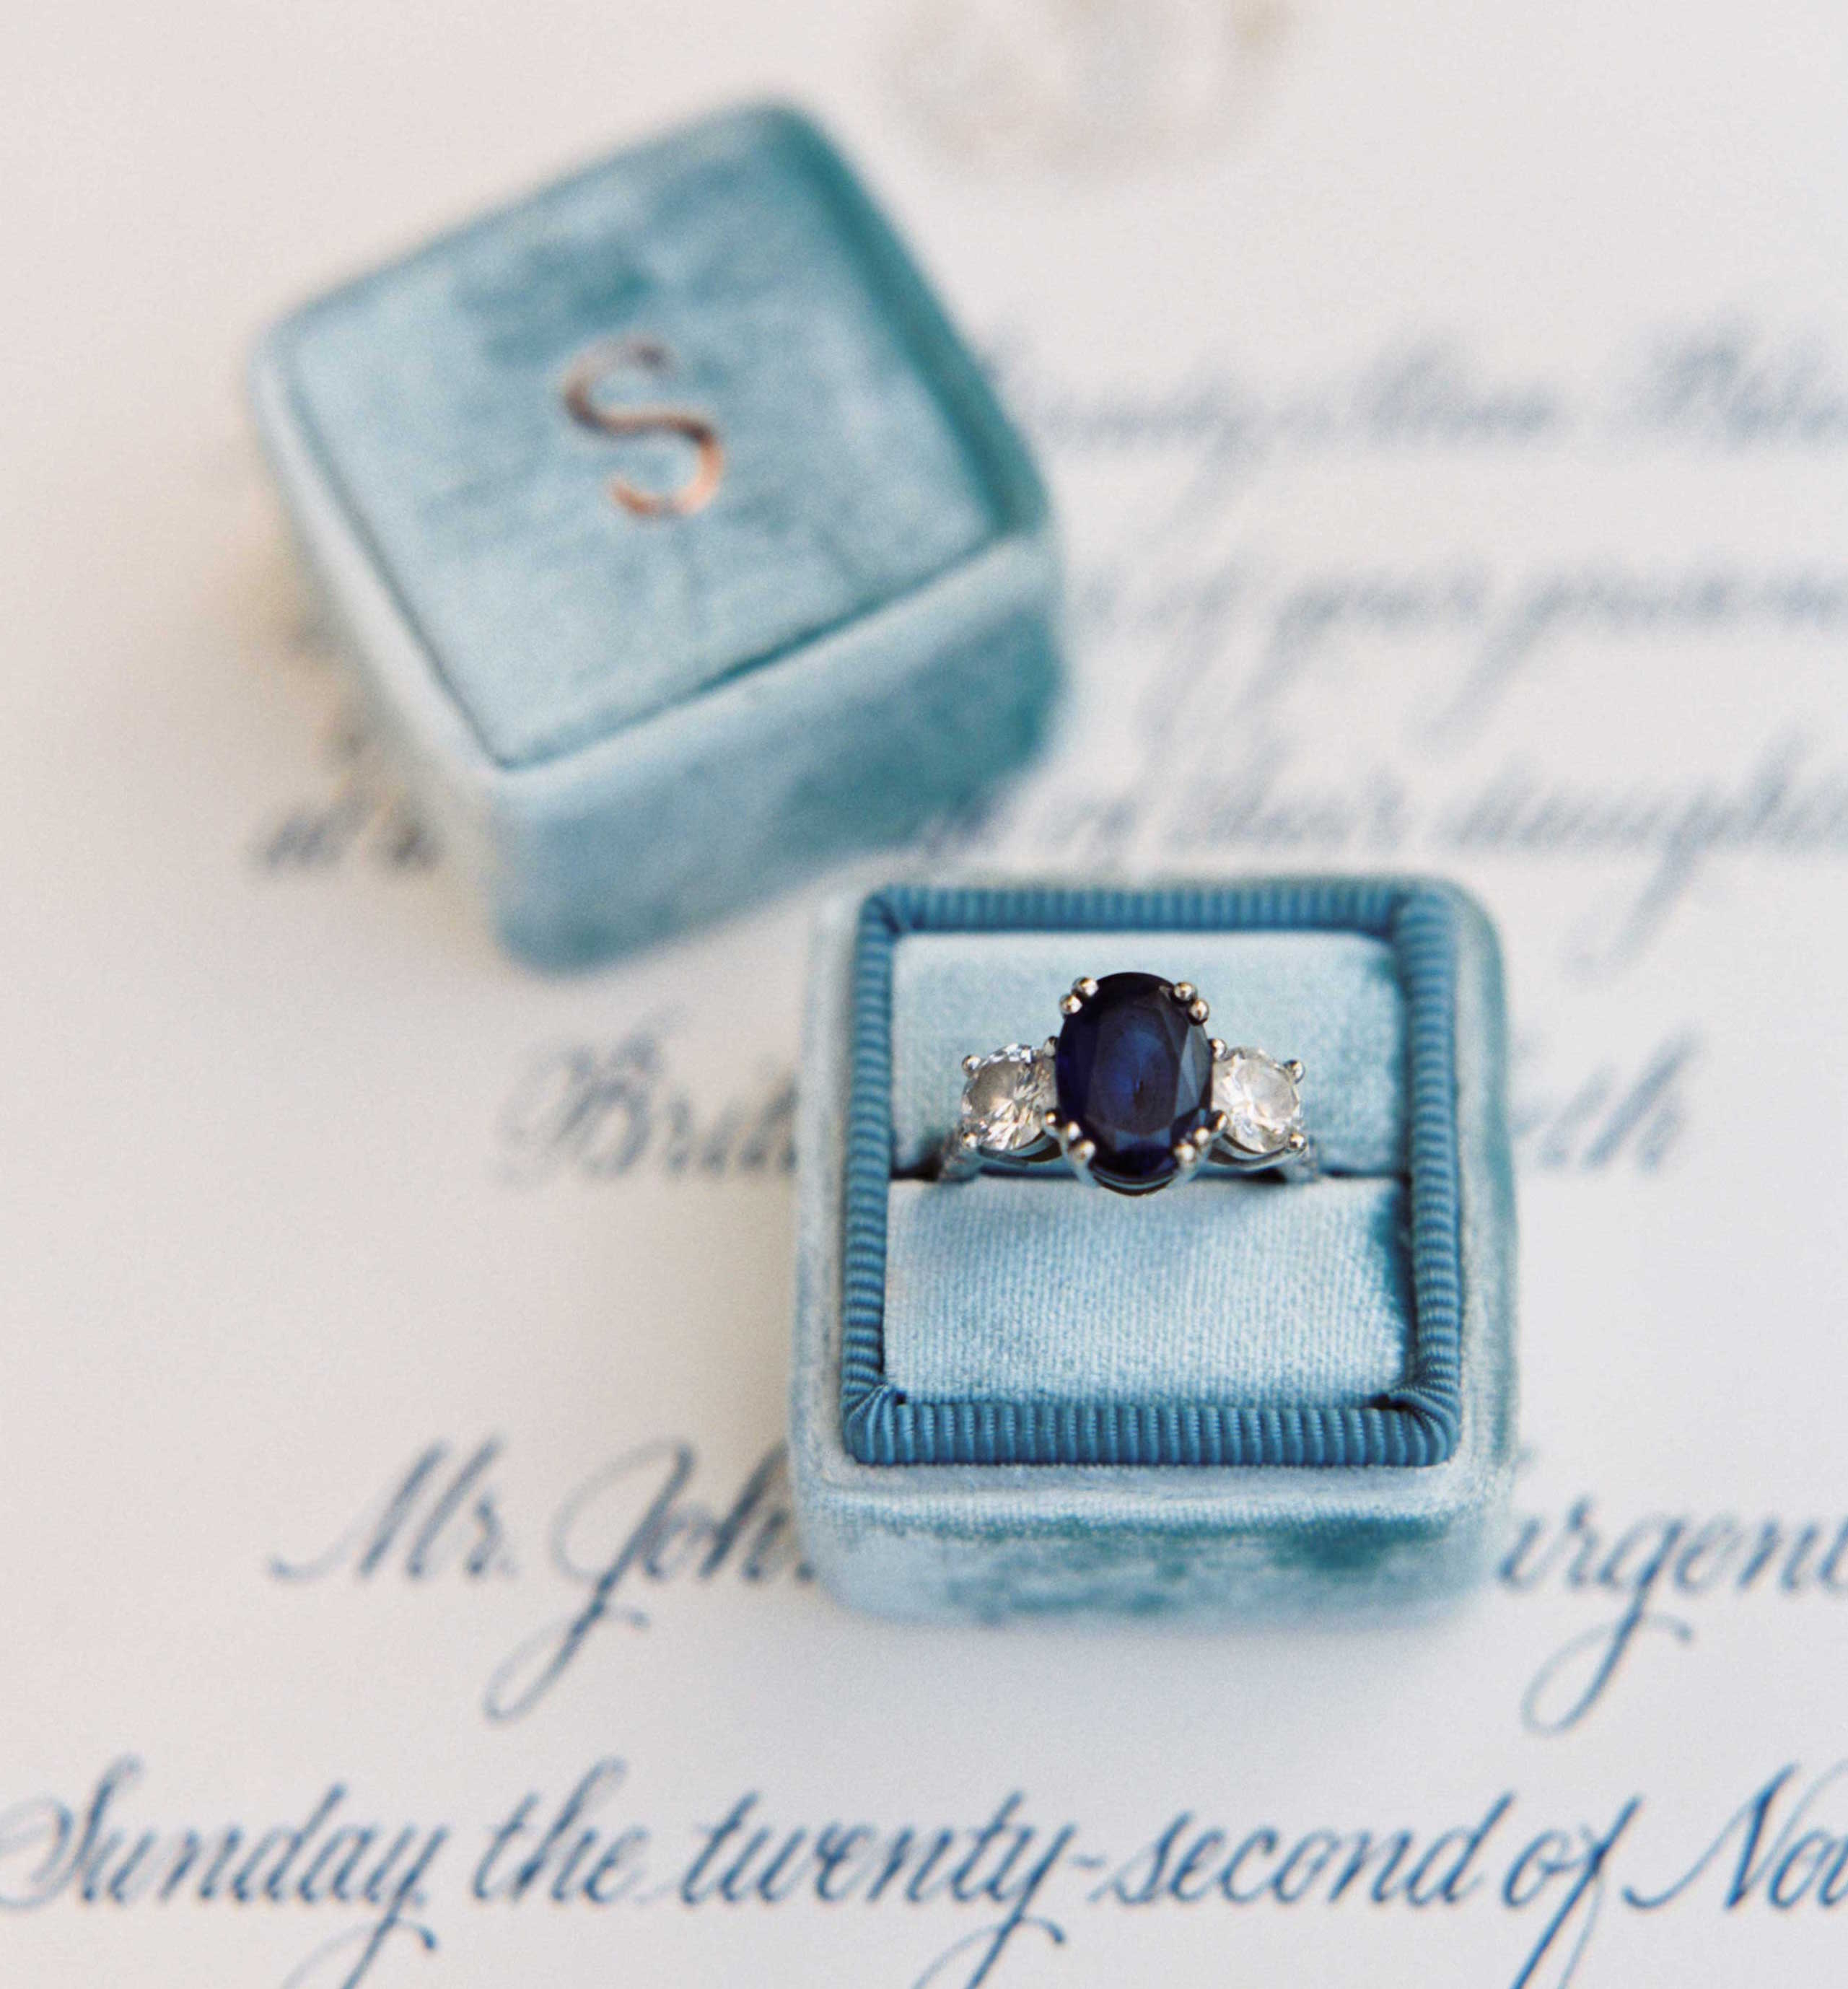 Sapphire engagement ring with heirloom side stones in light blue Mrs. Box